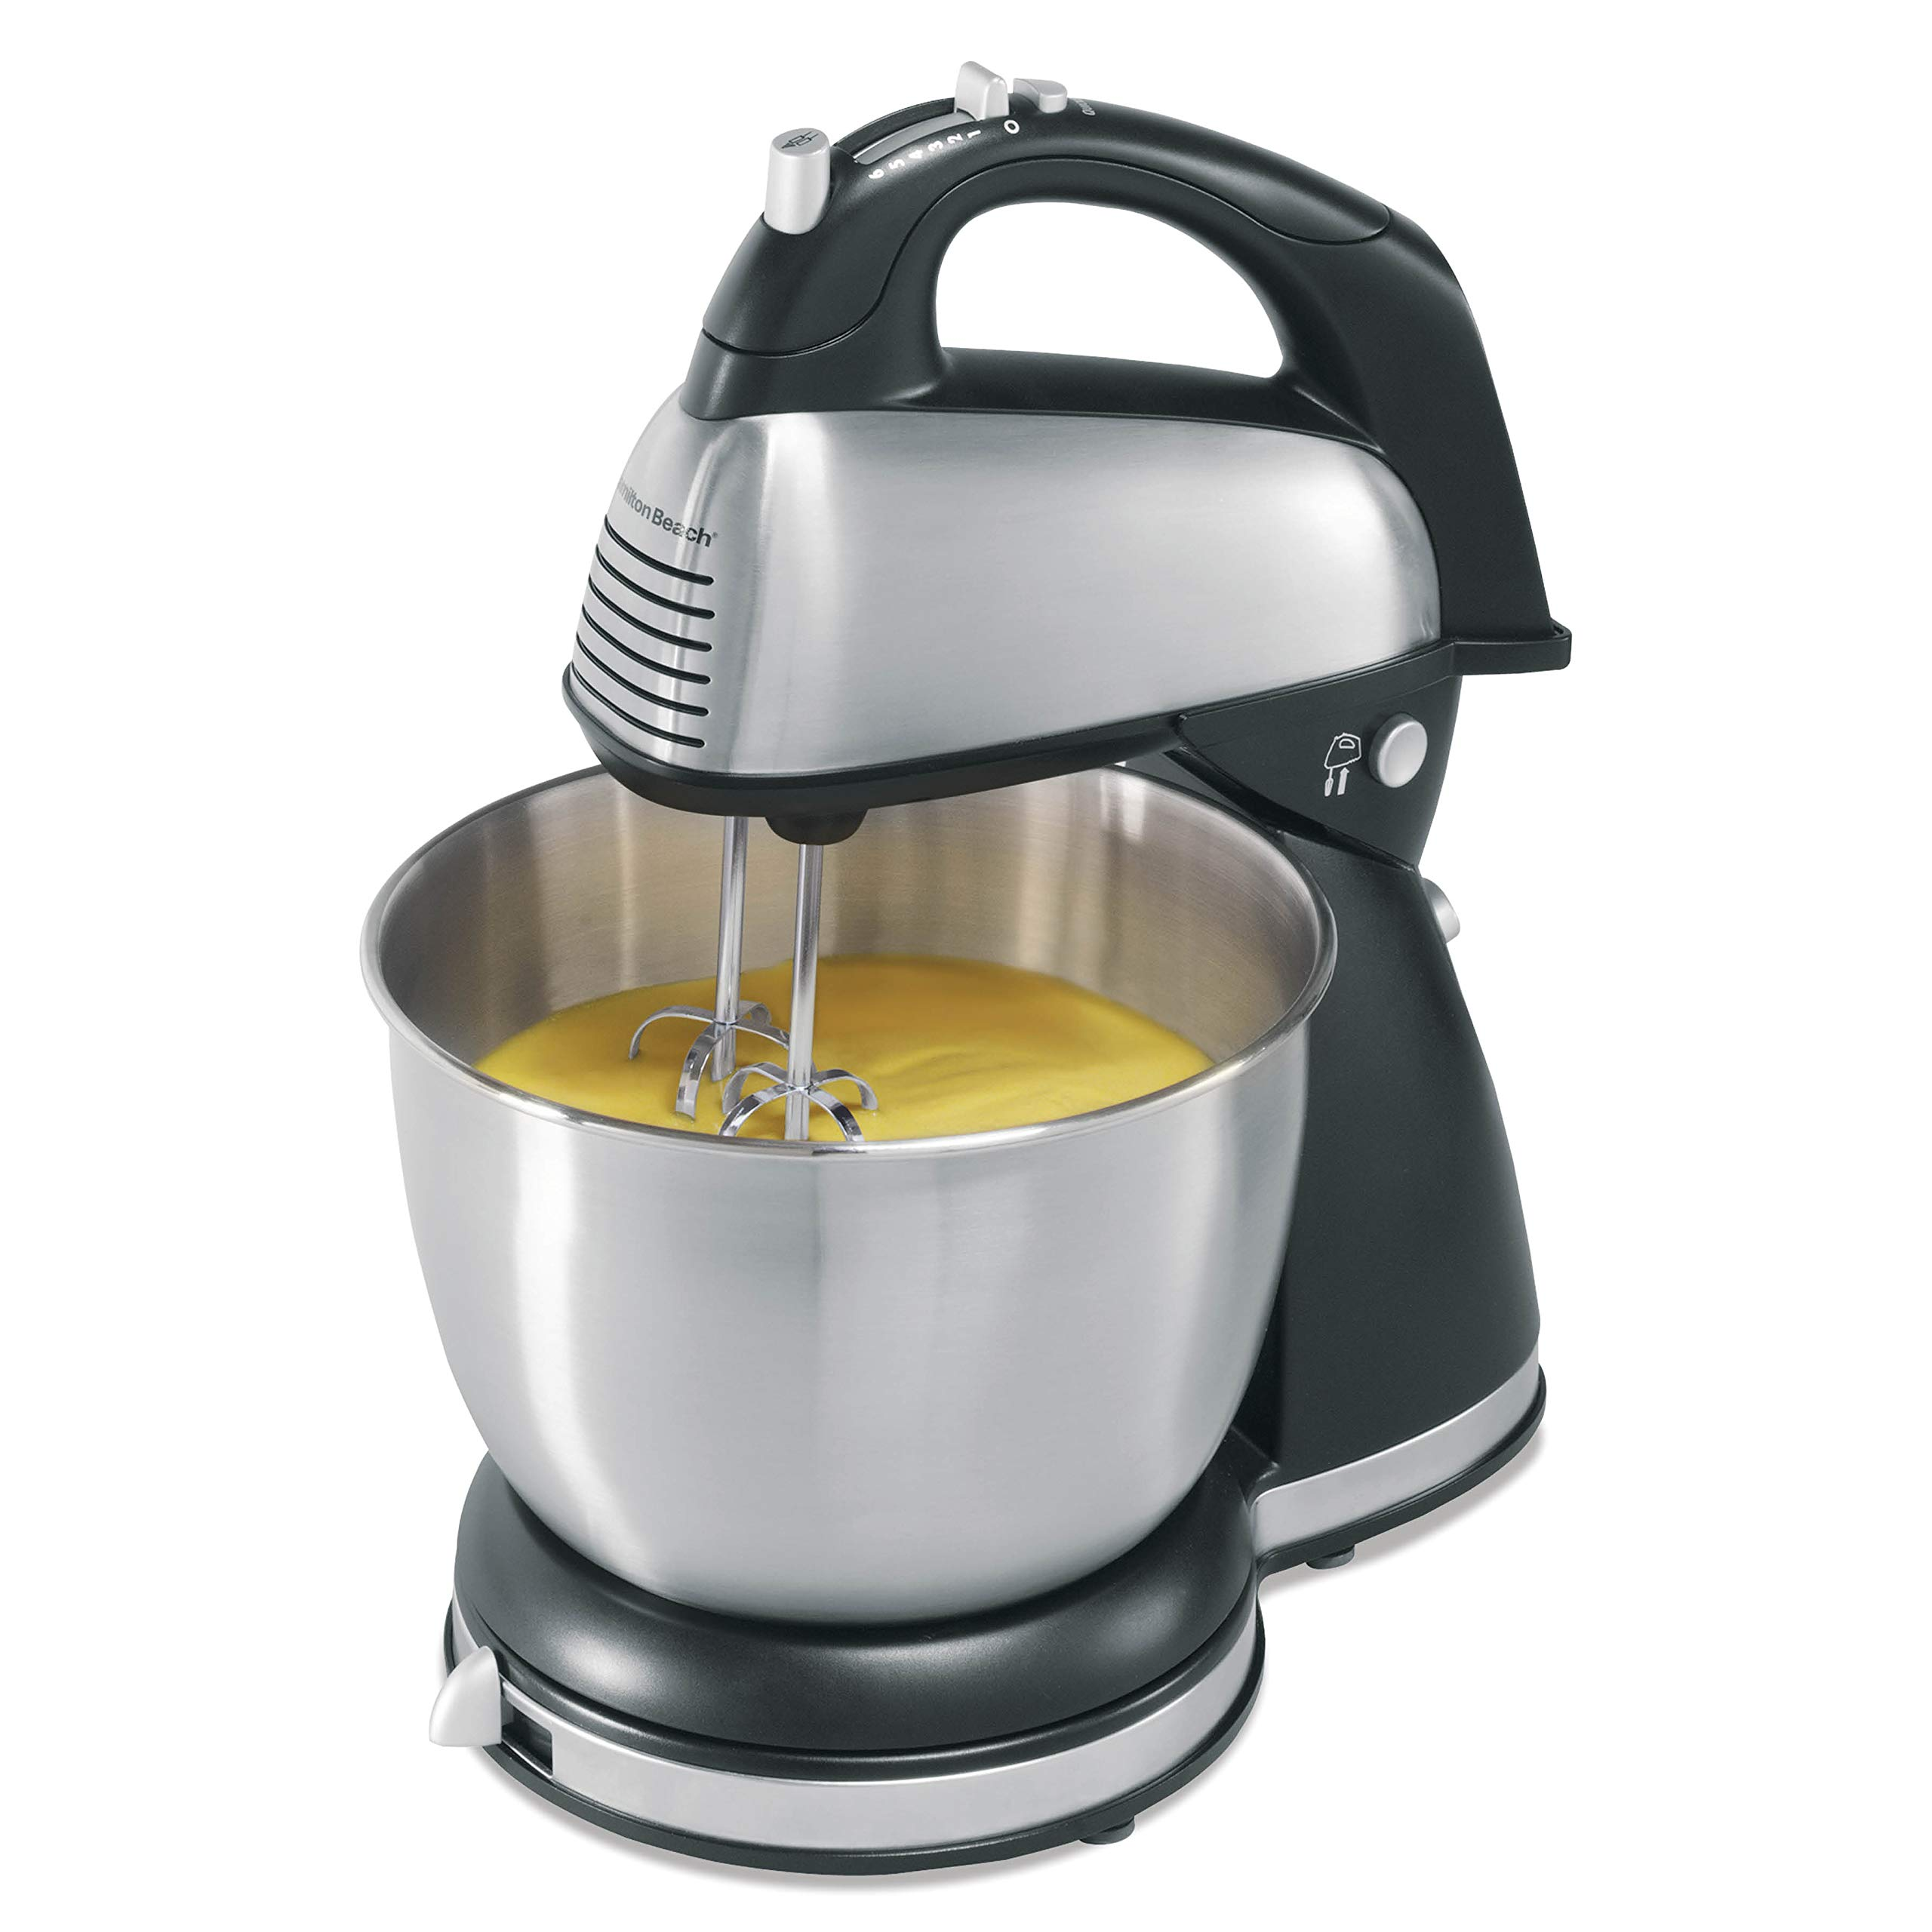 Hamilton Beach Classic Hand and Stand Mixer, 4 Quarts, 6 Speeds with QuickBurst, 290 Watts, Bowl Rest, Black and Stainless (64651), New by Hamilton Beach